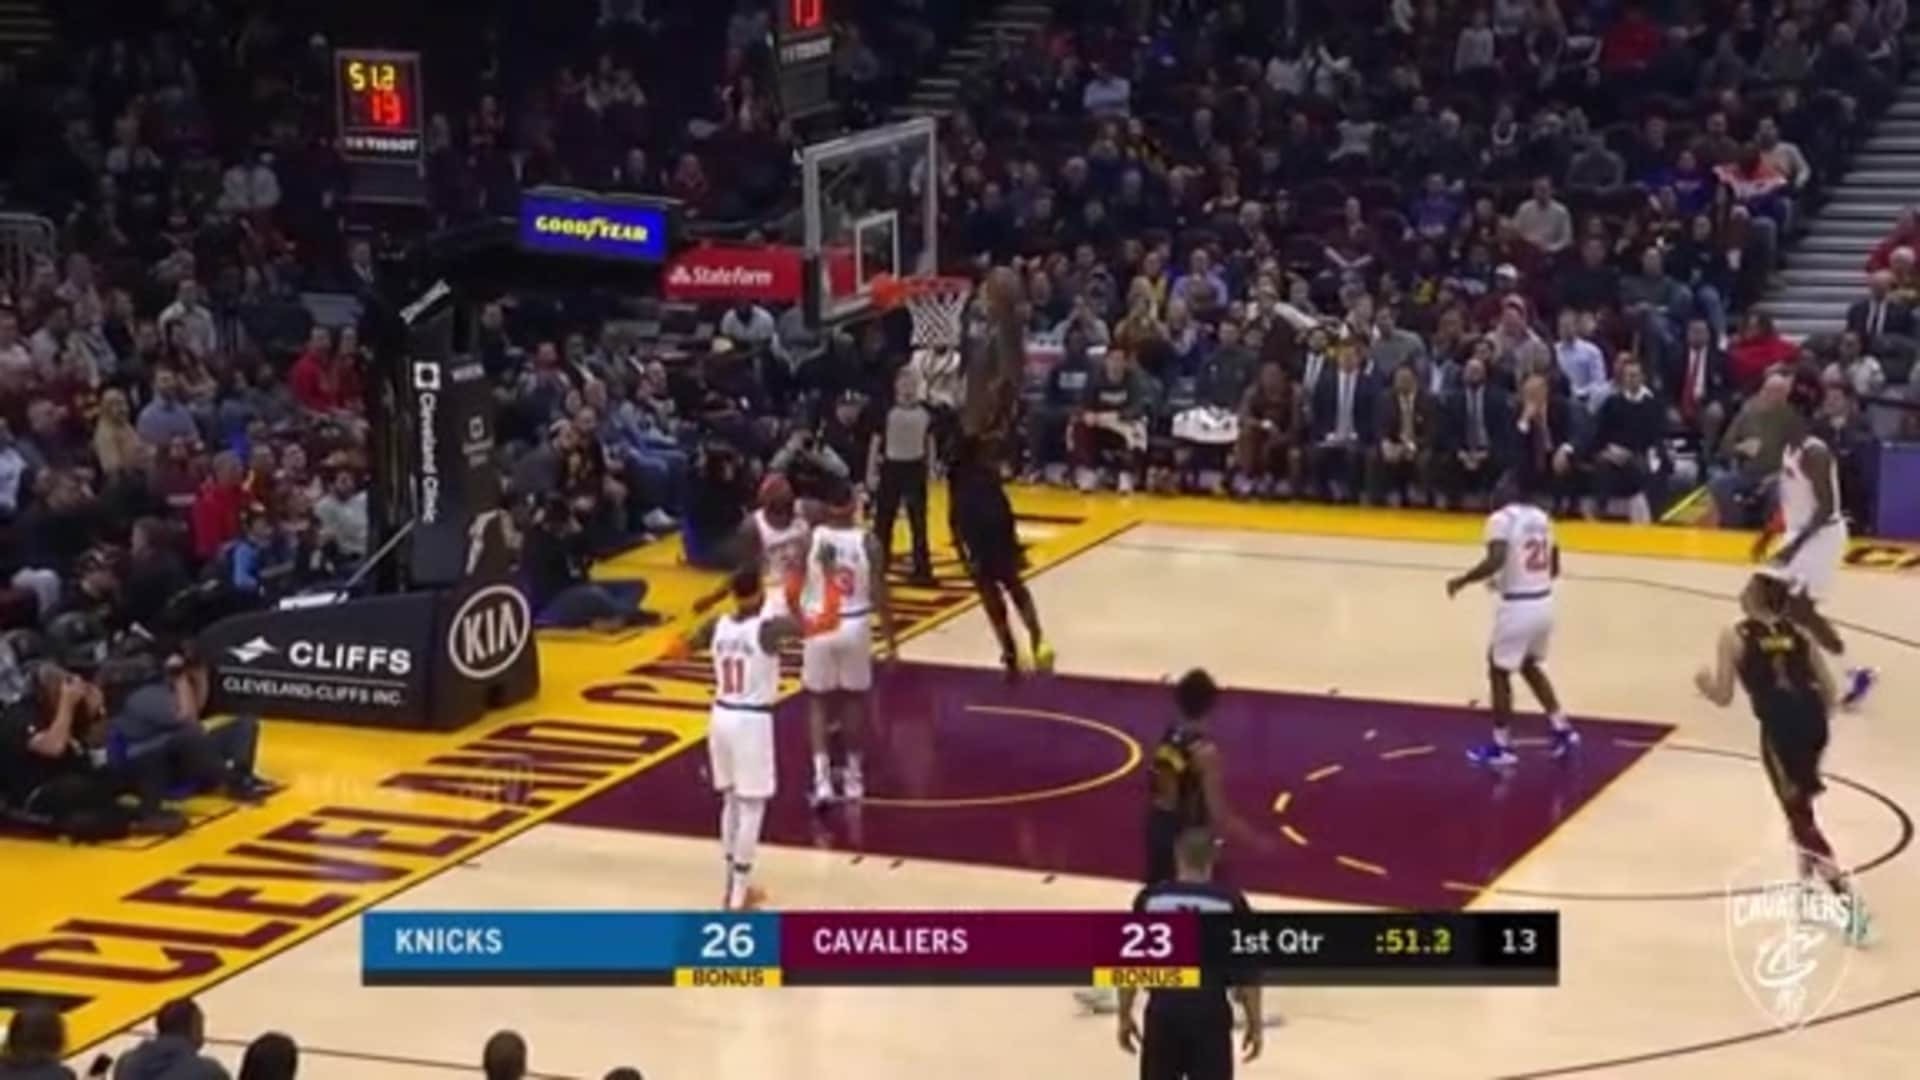 Thompson Keeps Play Alive, Dunks it Home